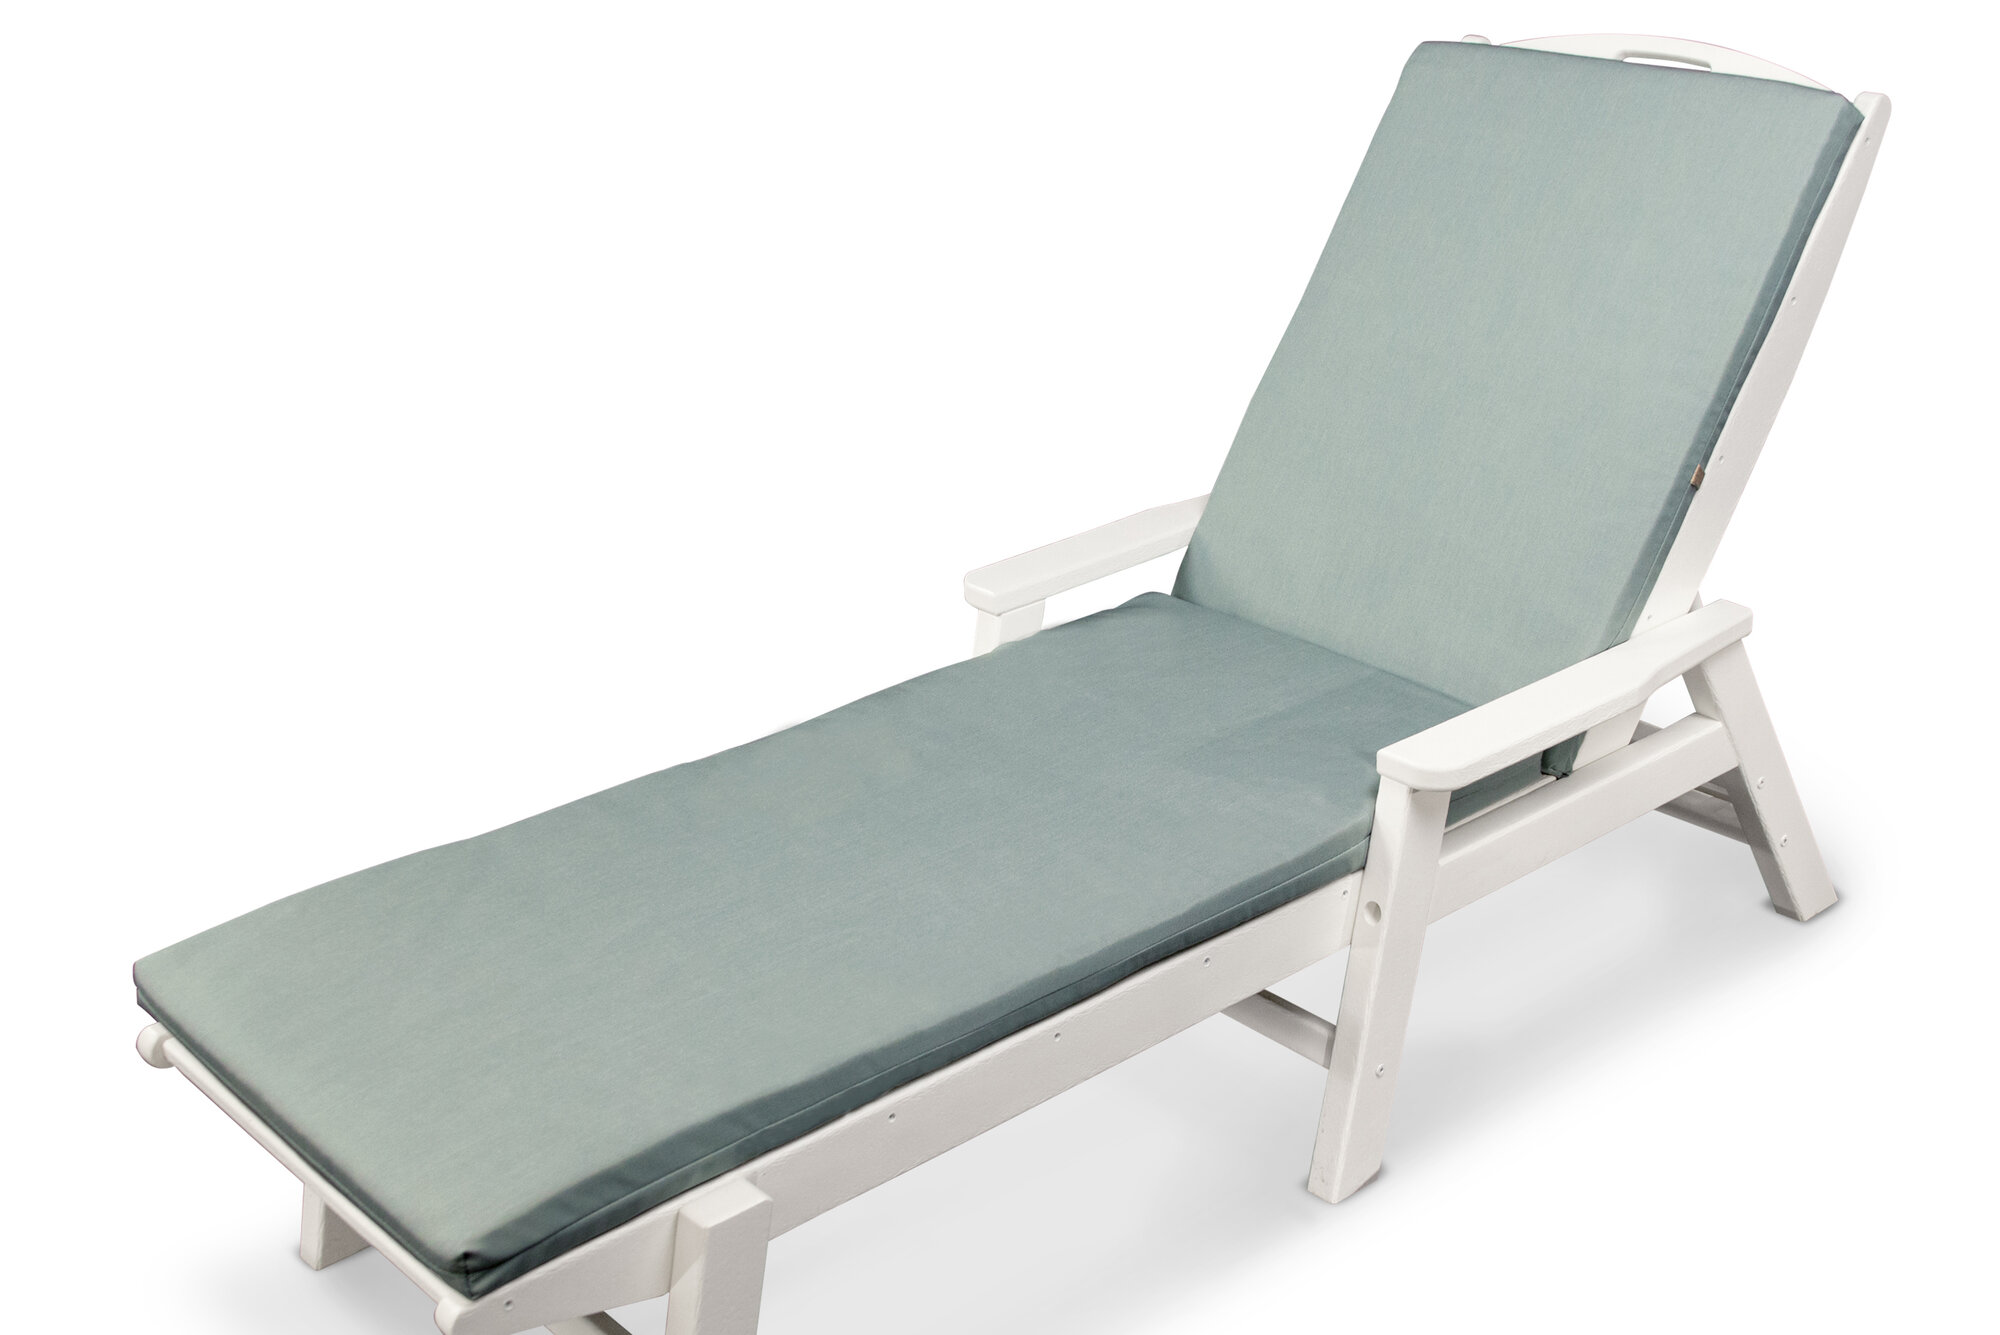 Ateeva outdoor sunbrella chaise lounge cushion ebay for Blue and white striped chaise lounge cushions